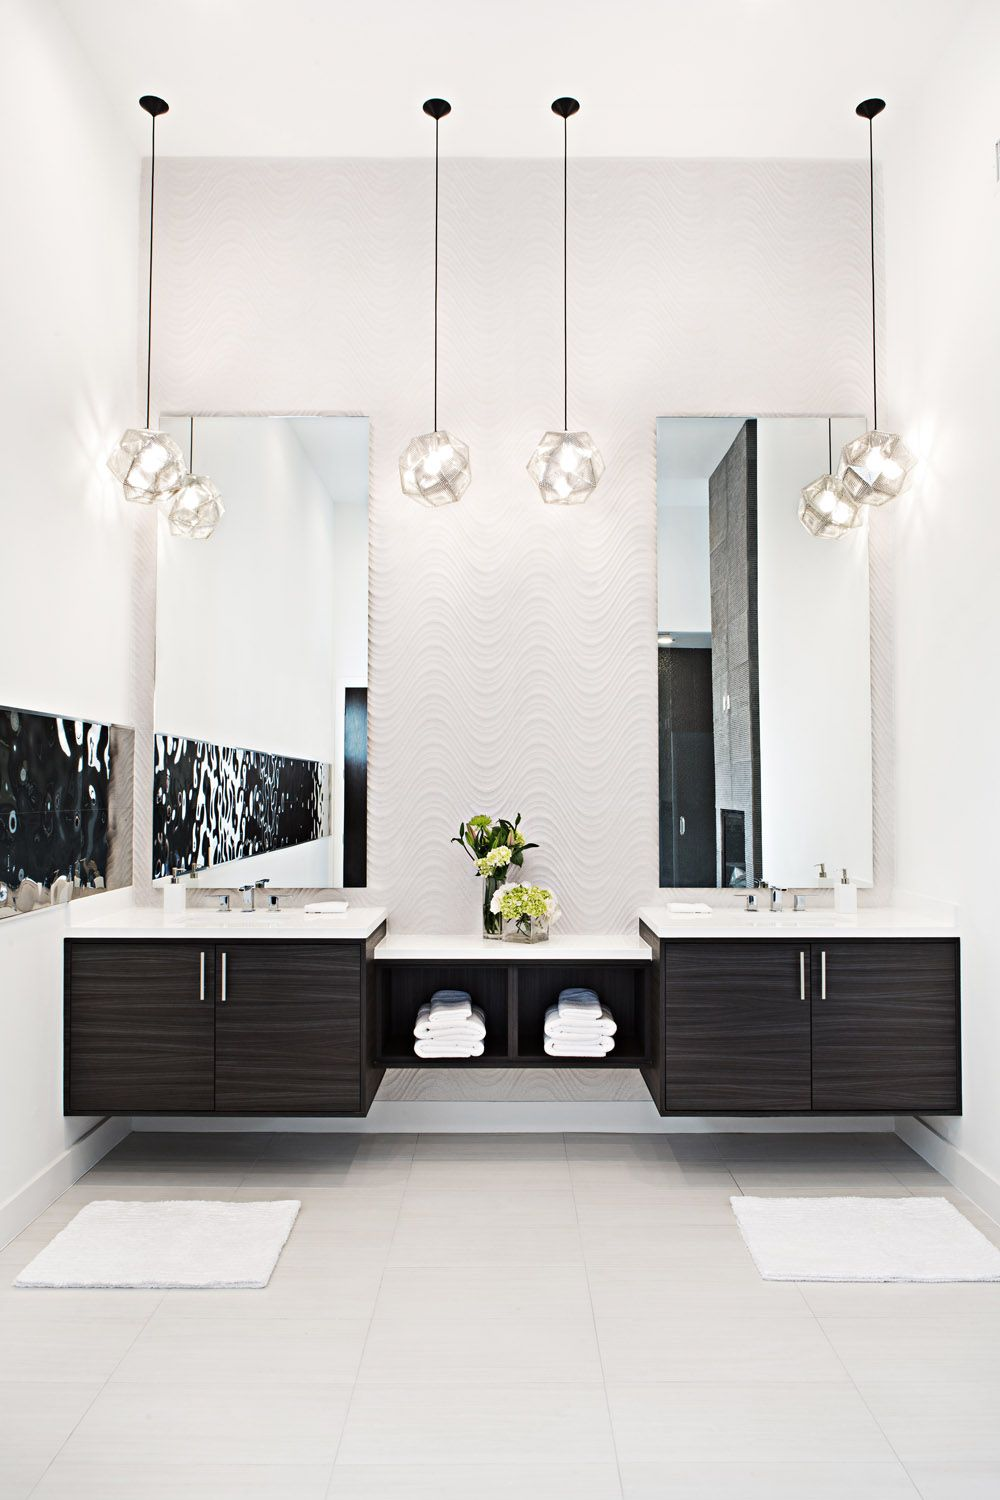 also corner design houston bedroom pspindy sink gray cabinets full size vanity stained vanities vanit fabulous window wall bathroom small images of bunch mounted and trends ideas ahoustoncom